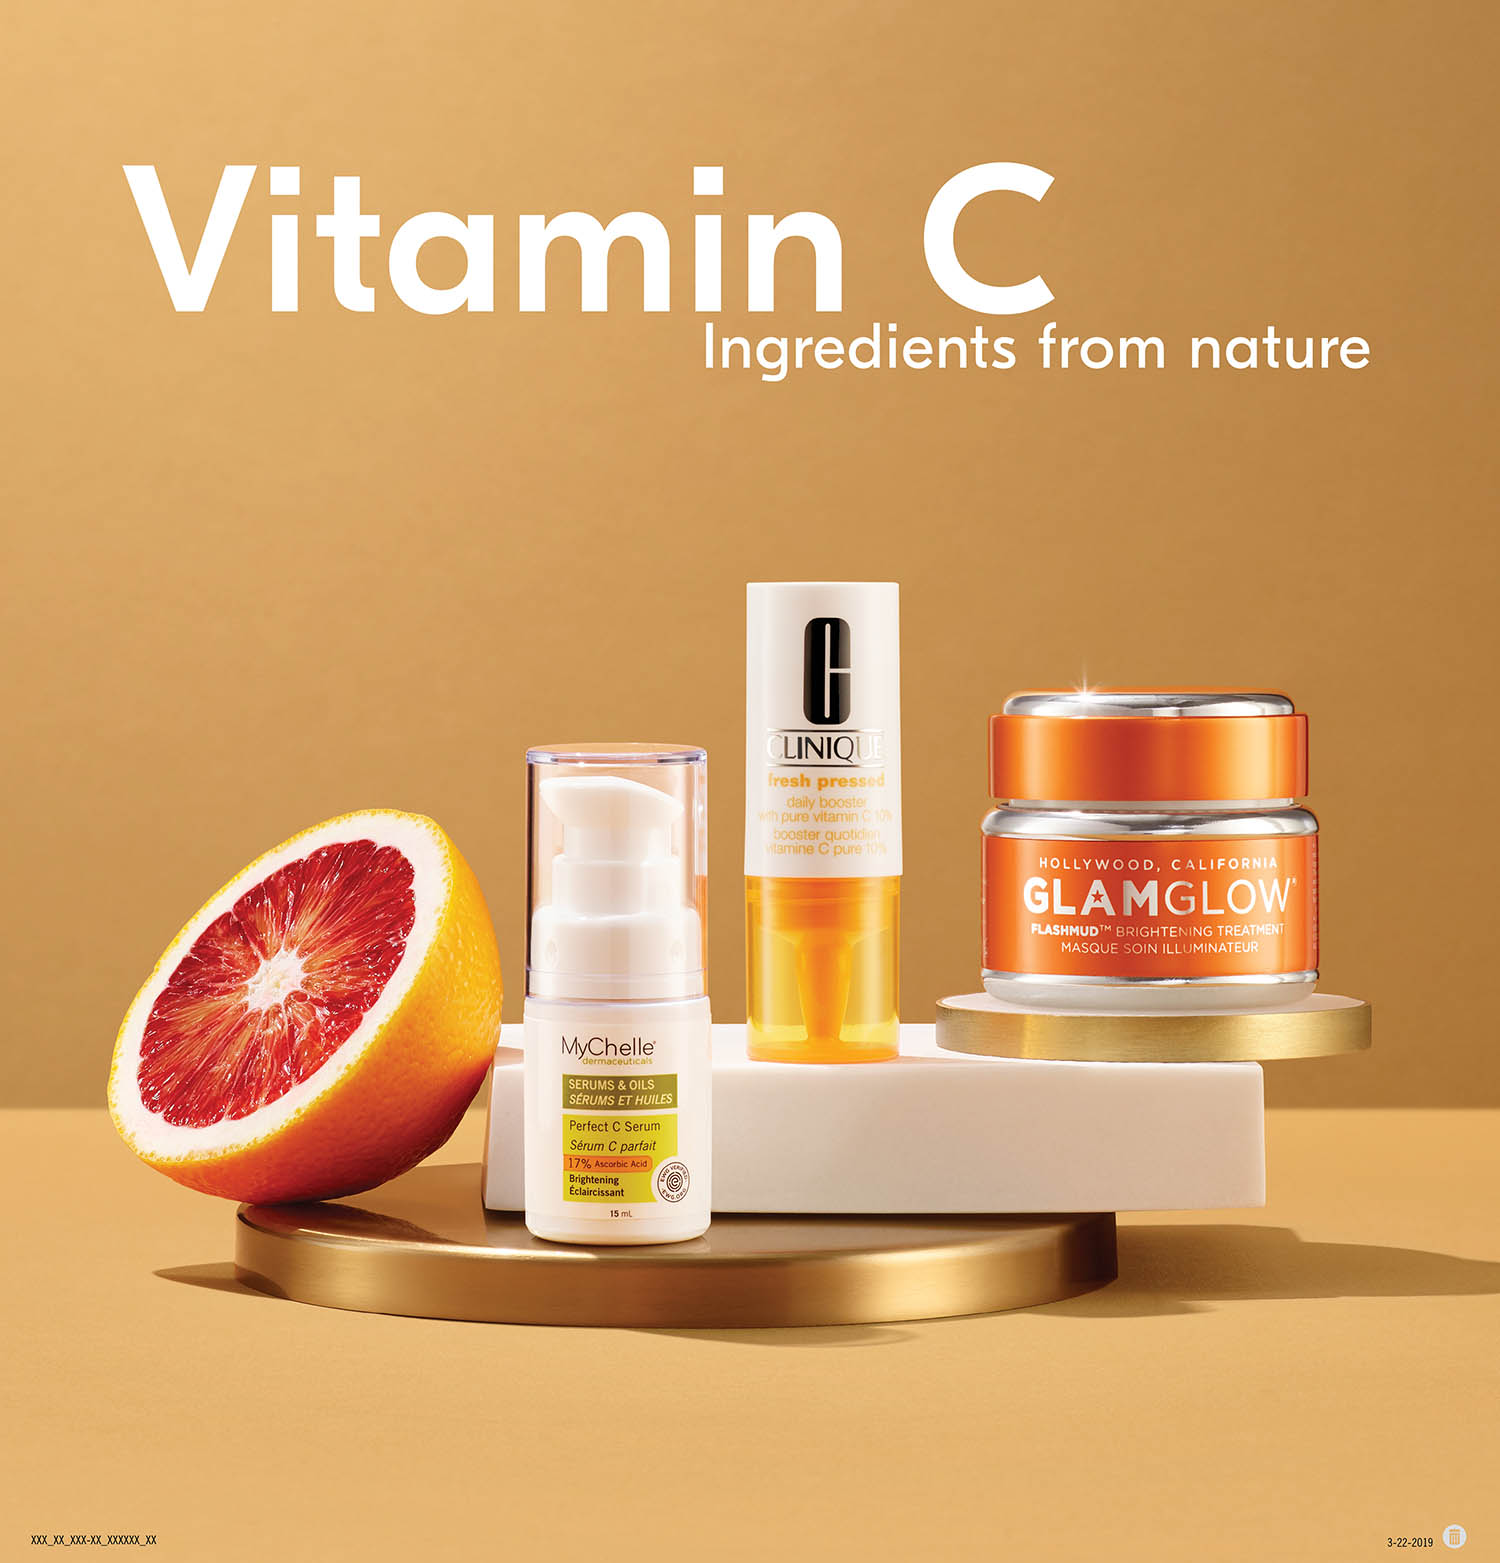 0002-19B Naturals & Indies Etagere_Sign-BB_12x12.5_(ETG-SGN) VitaminC.jpg